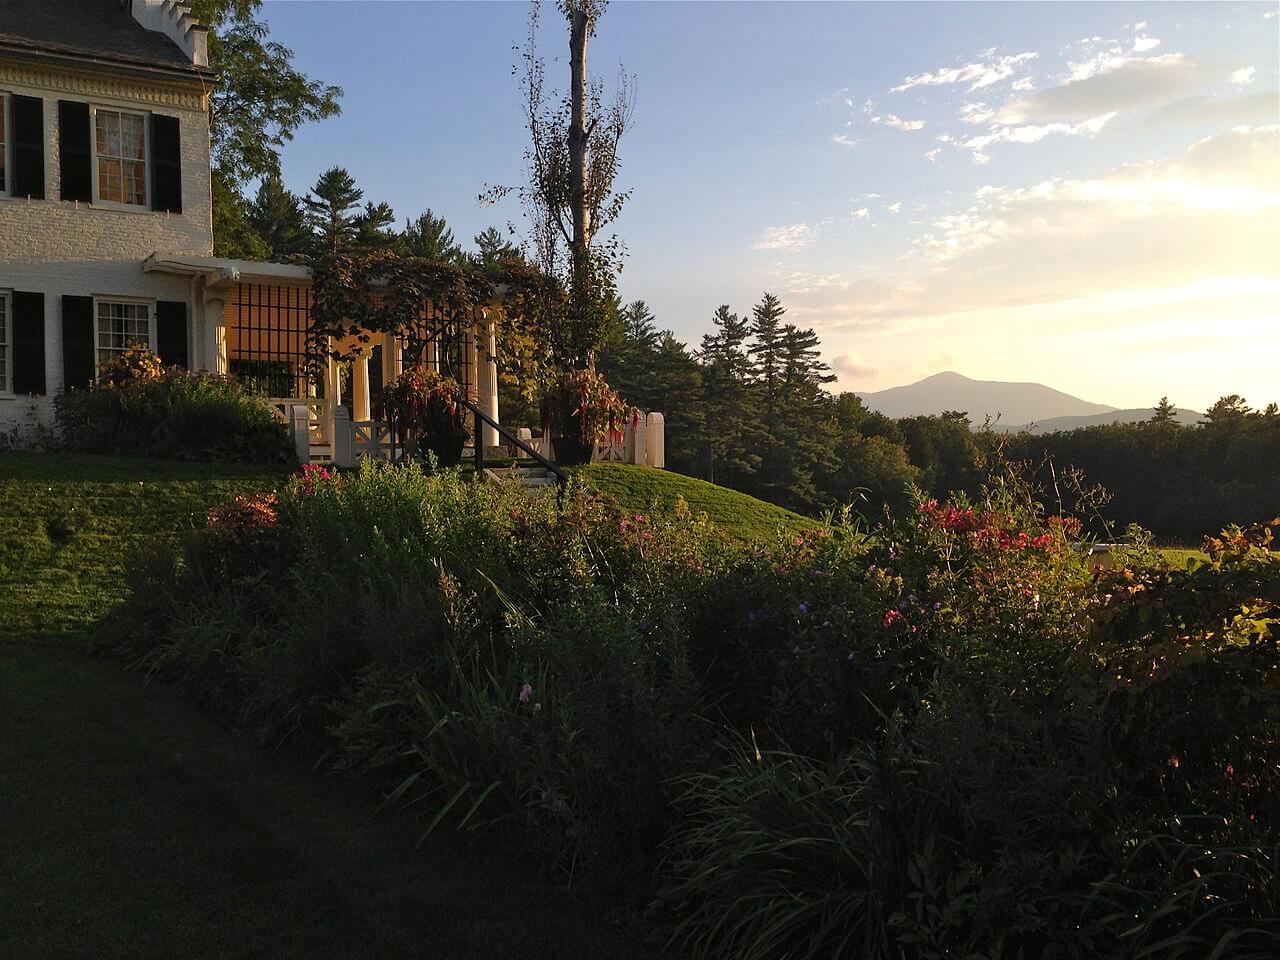 Saint-Gaudens National Historic Site at sunset. Photo by  Marianna Foral  /  CC BY